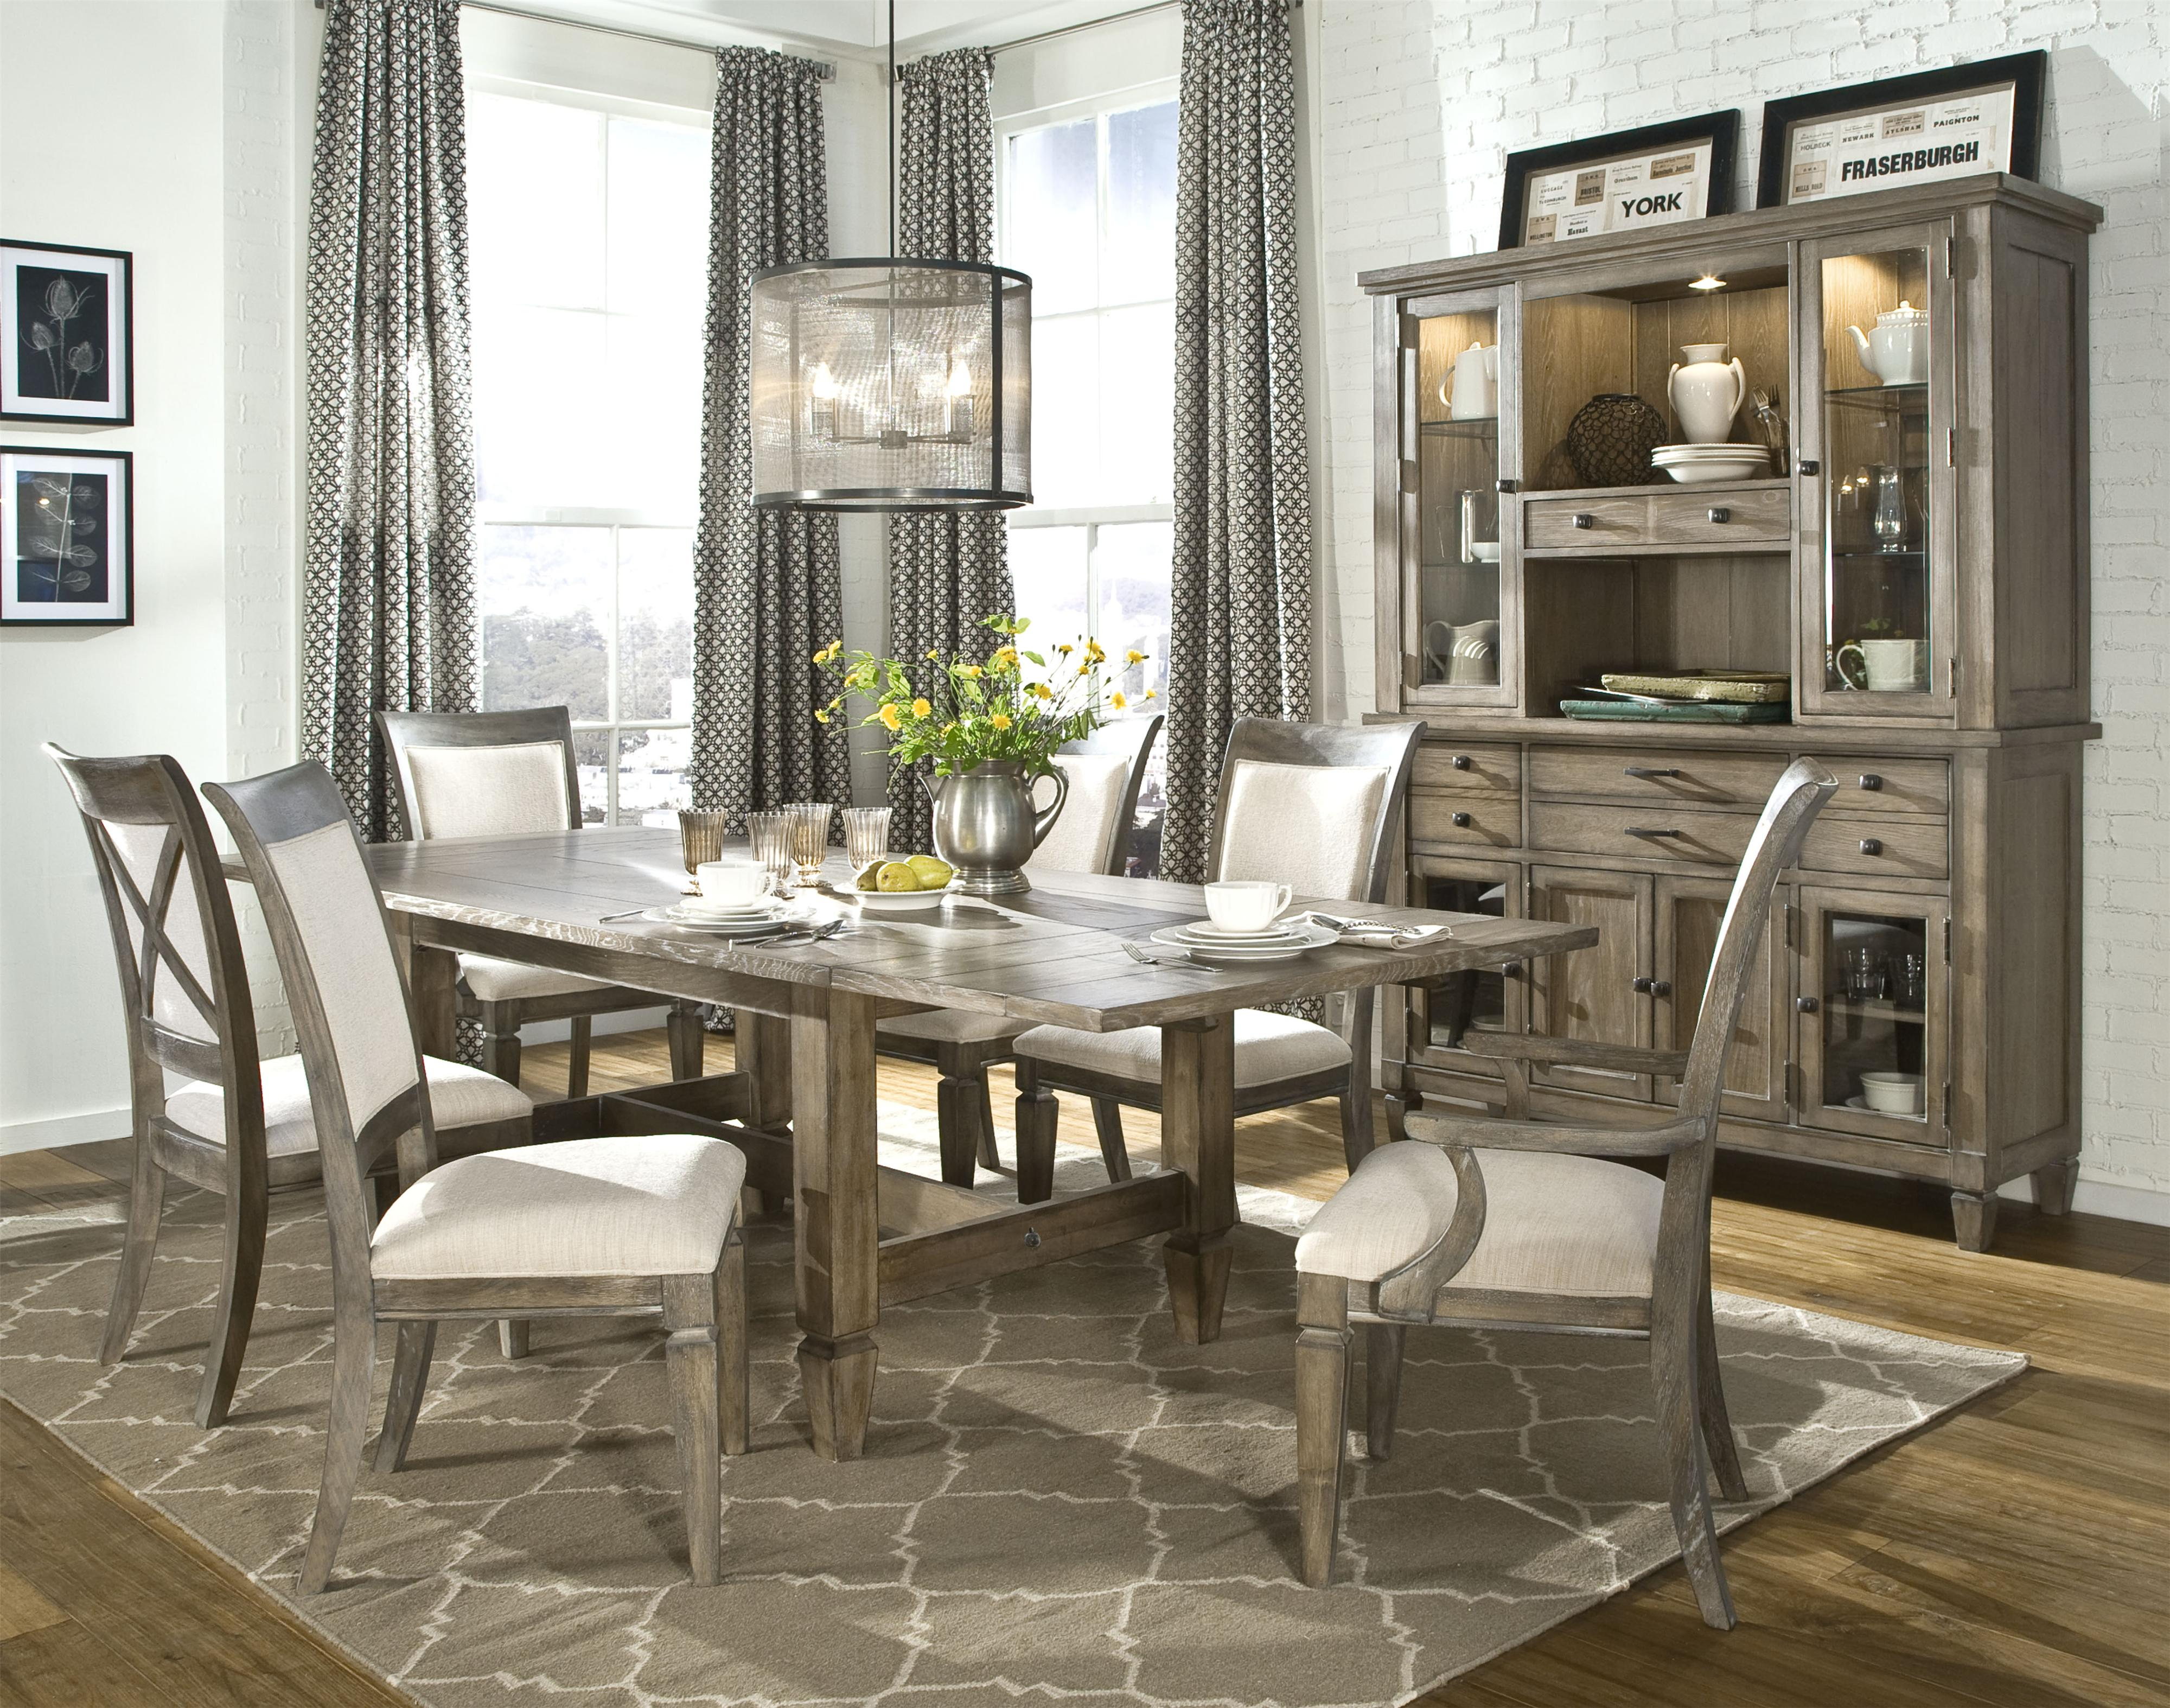 gallery rustic chic dining images rustic foldablediningtable furniture dining room chic dining room table